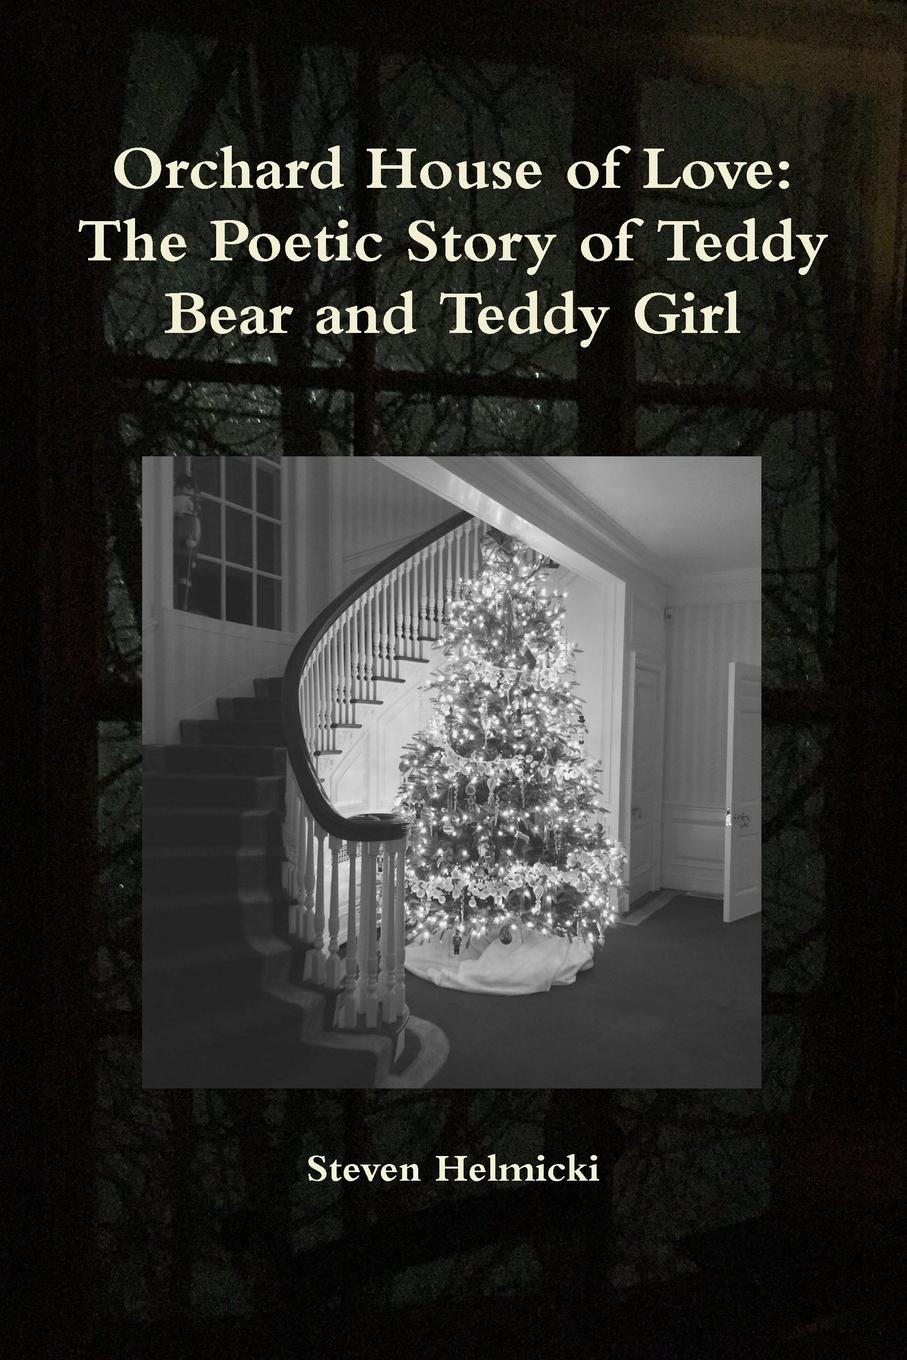 Steven Helmicki Orchard House of Love. The Poetic Story of Teddy Bear and Teddy Girl